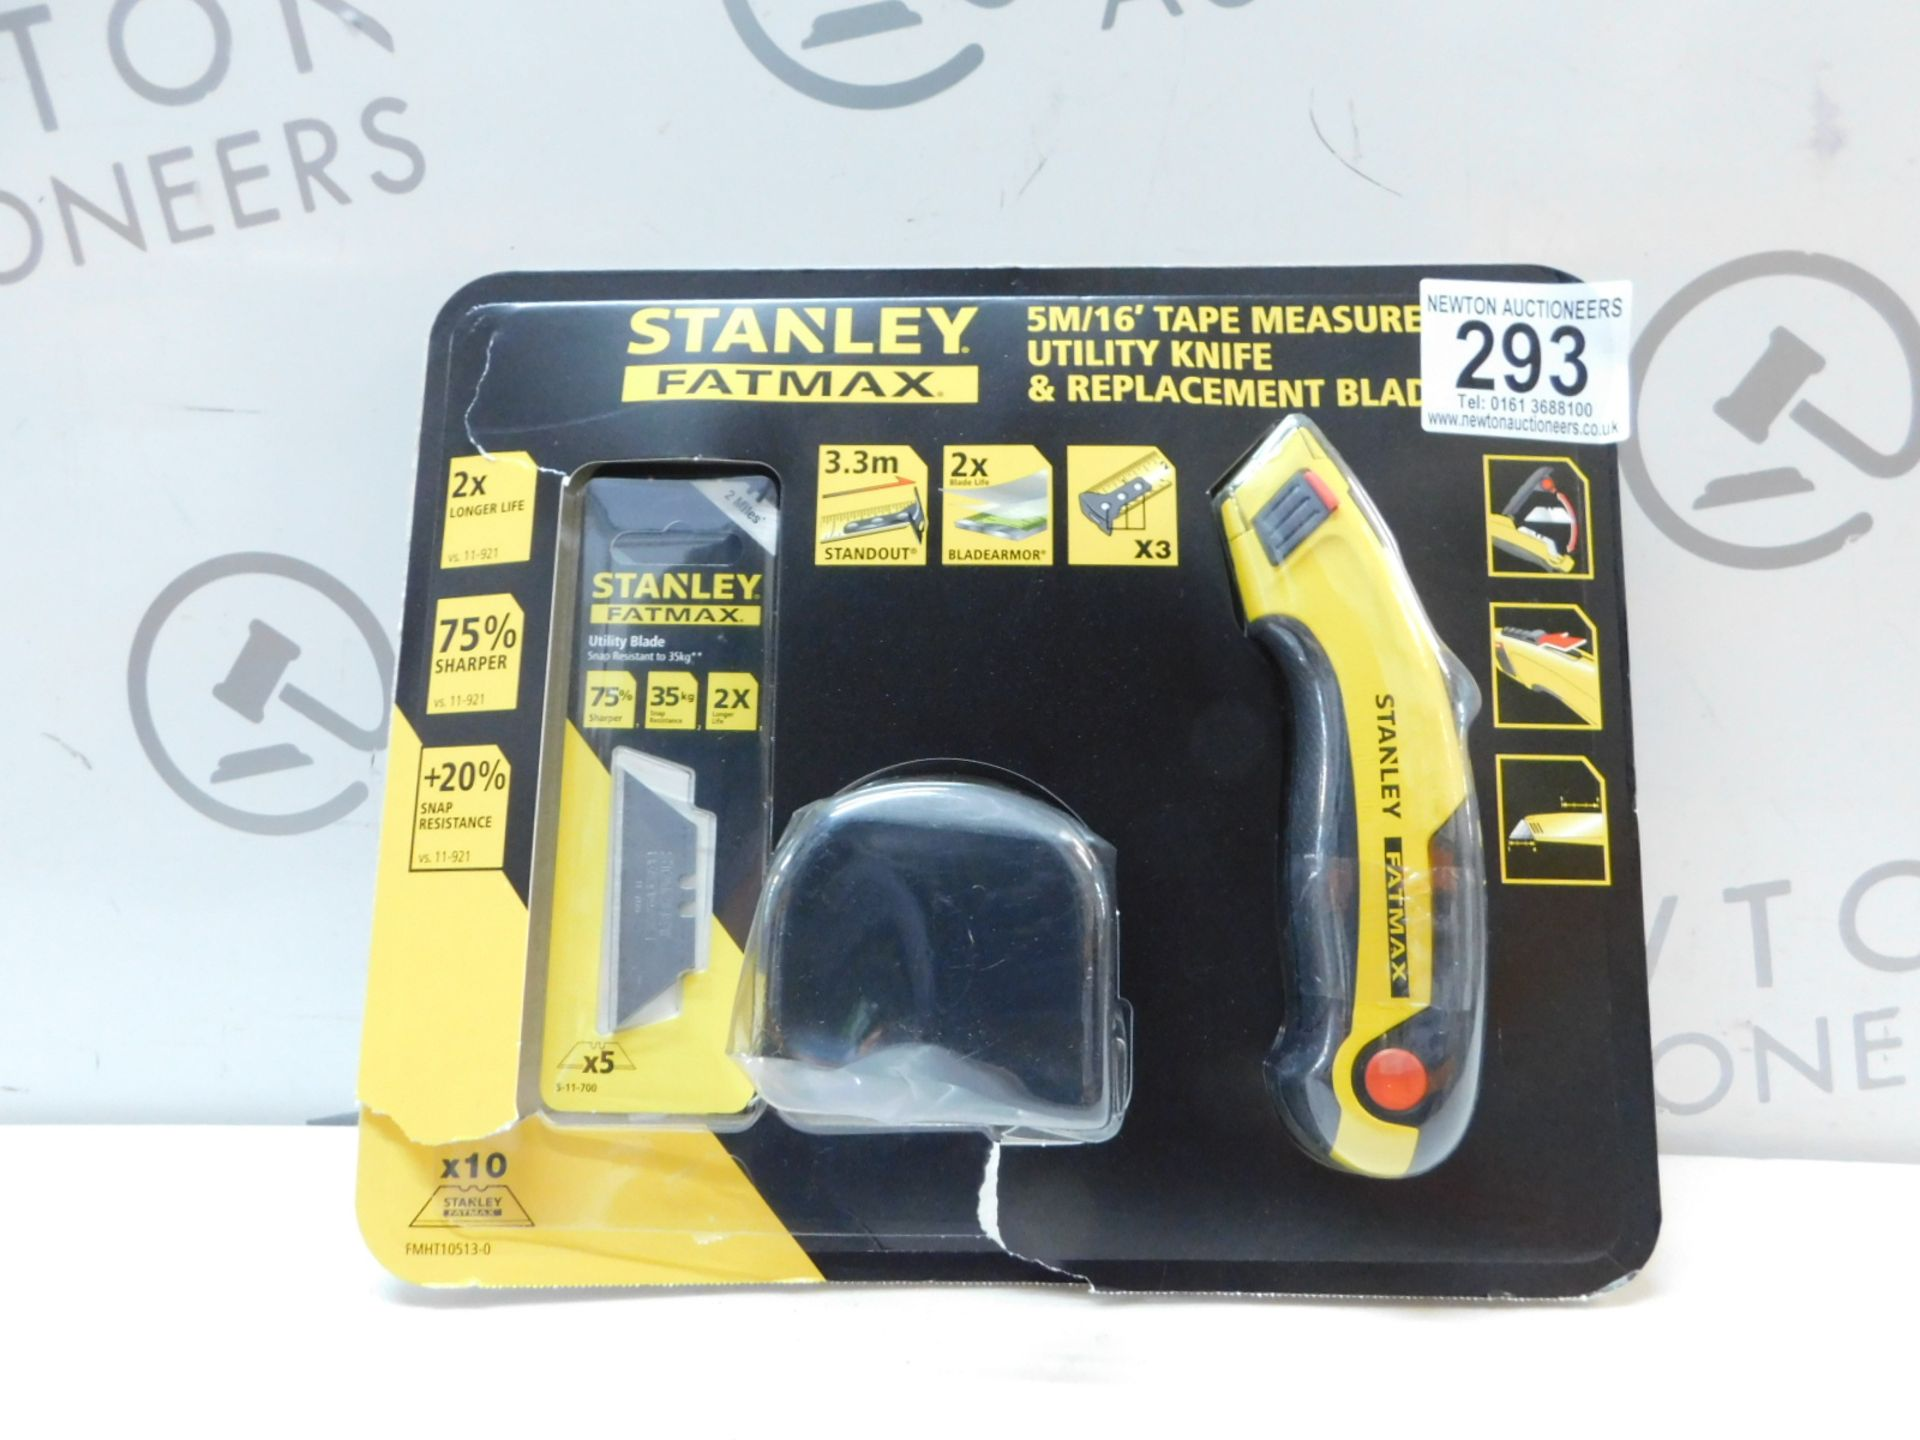 Lot 293 - 1 PACK OF STANLEY FATMAX UTILITY KNIFE & REPLACEMENT BLADES RRP £29.99